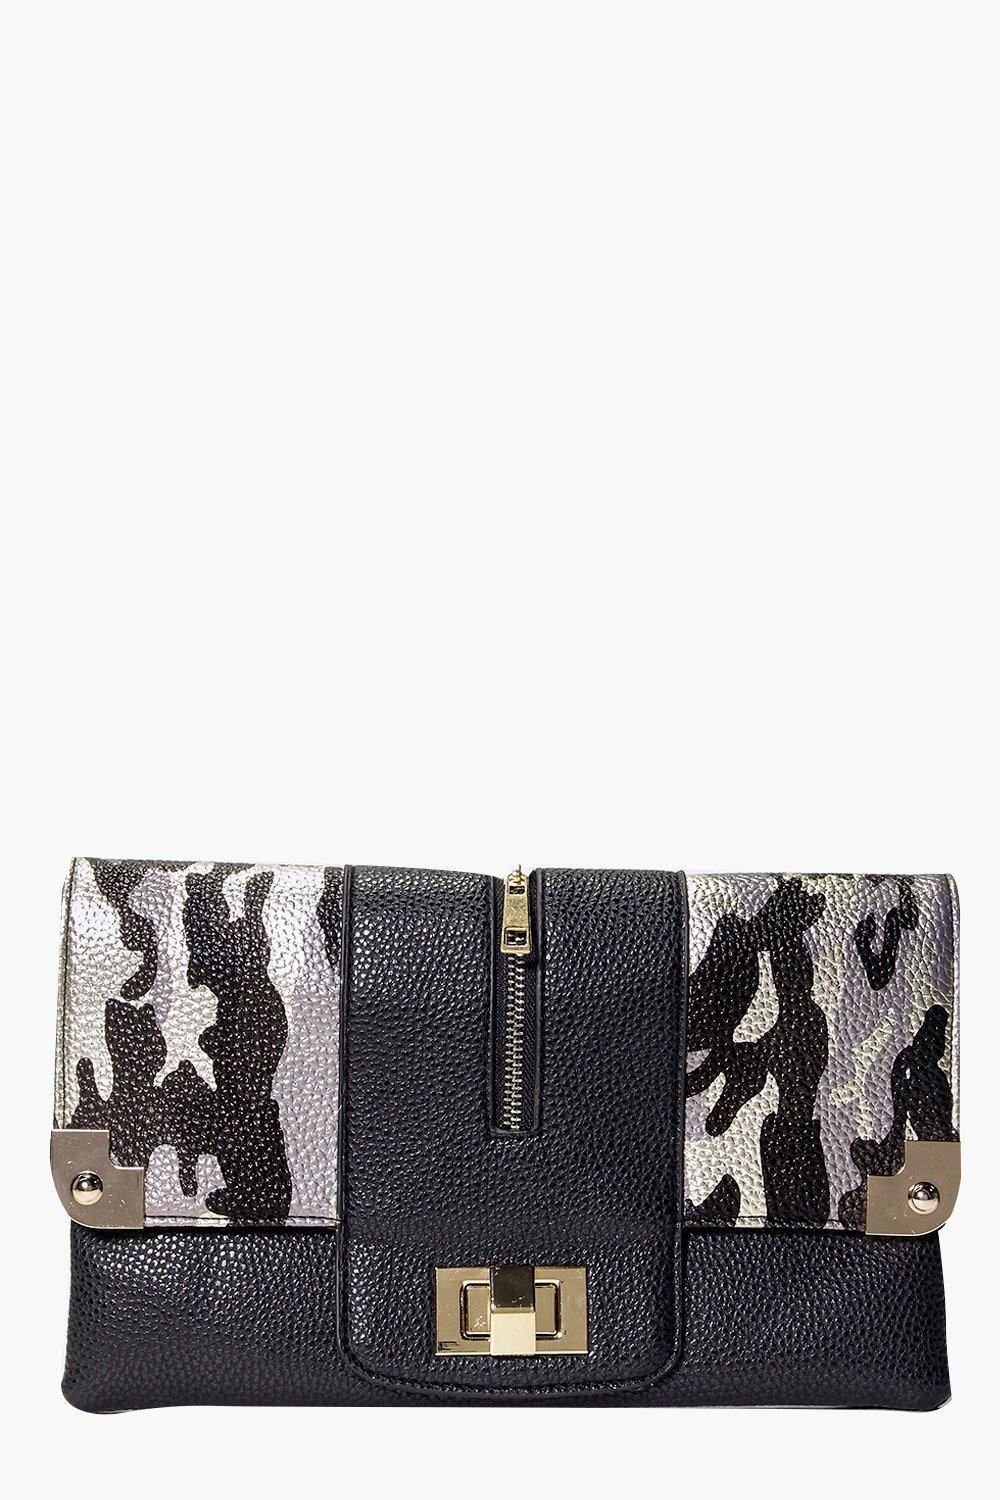 Camouflage And Metal Detail Clutch Bag Black - secondary colour: white; predominant colour: black; occasions: evening; type of pattern: light; style: clutch; length: hand carry; size: small; material: faux leather; finish: plain; pattern: patterned/print; season: s/s 2016; wardrobe: event